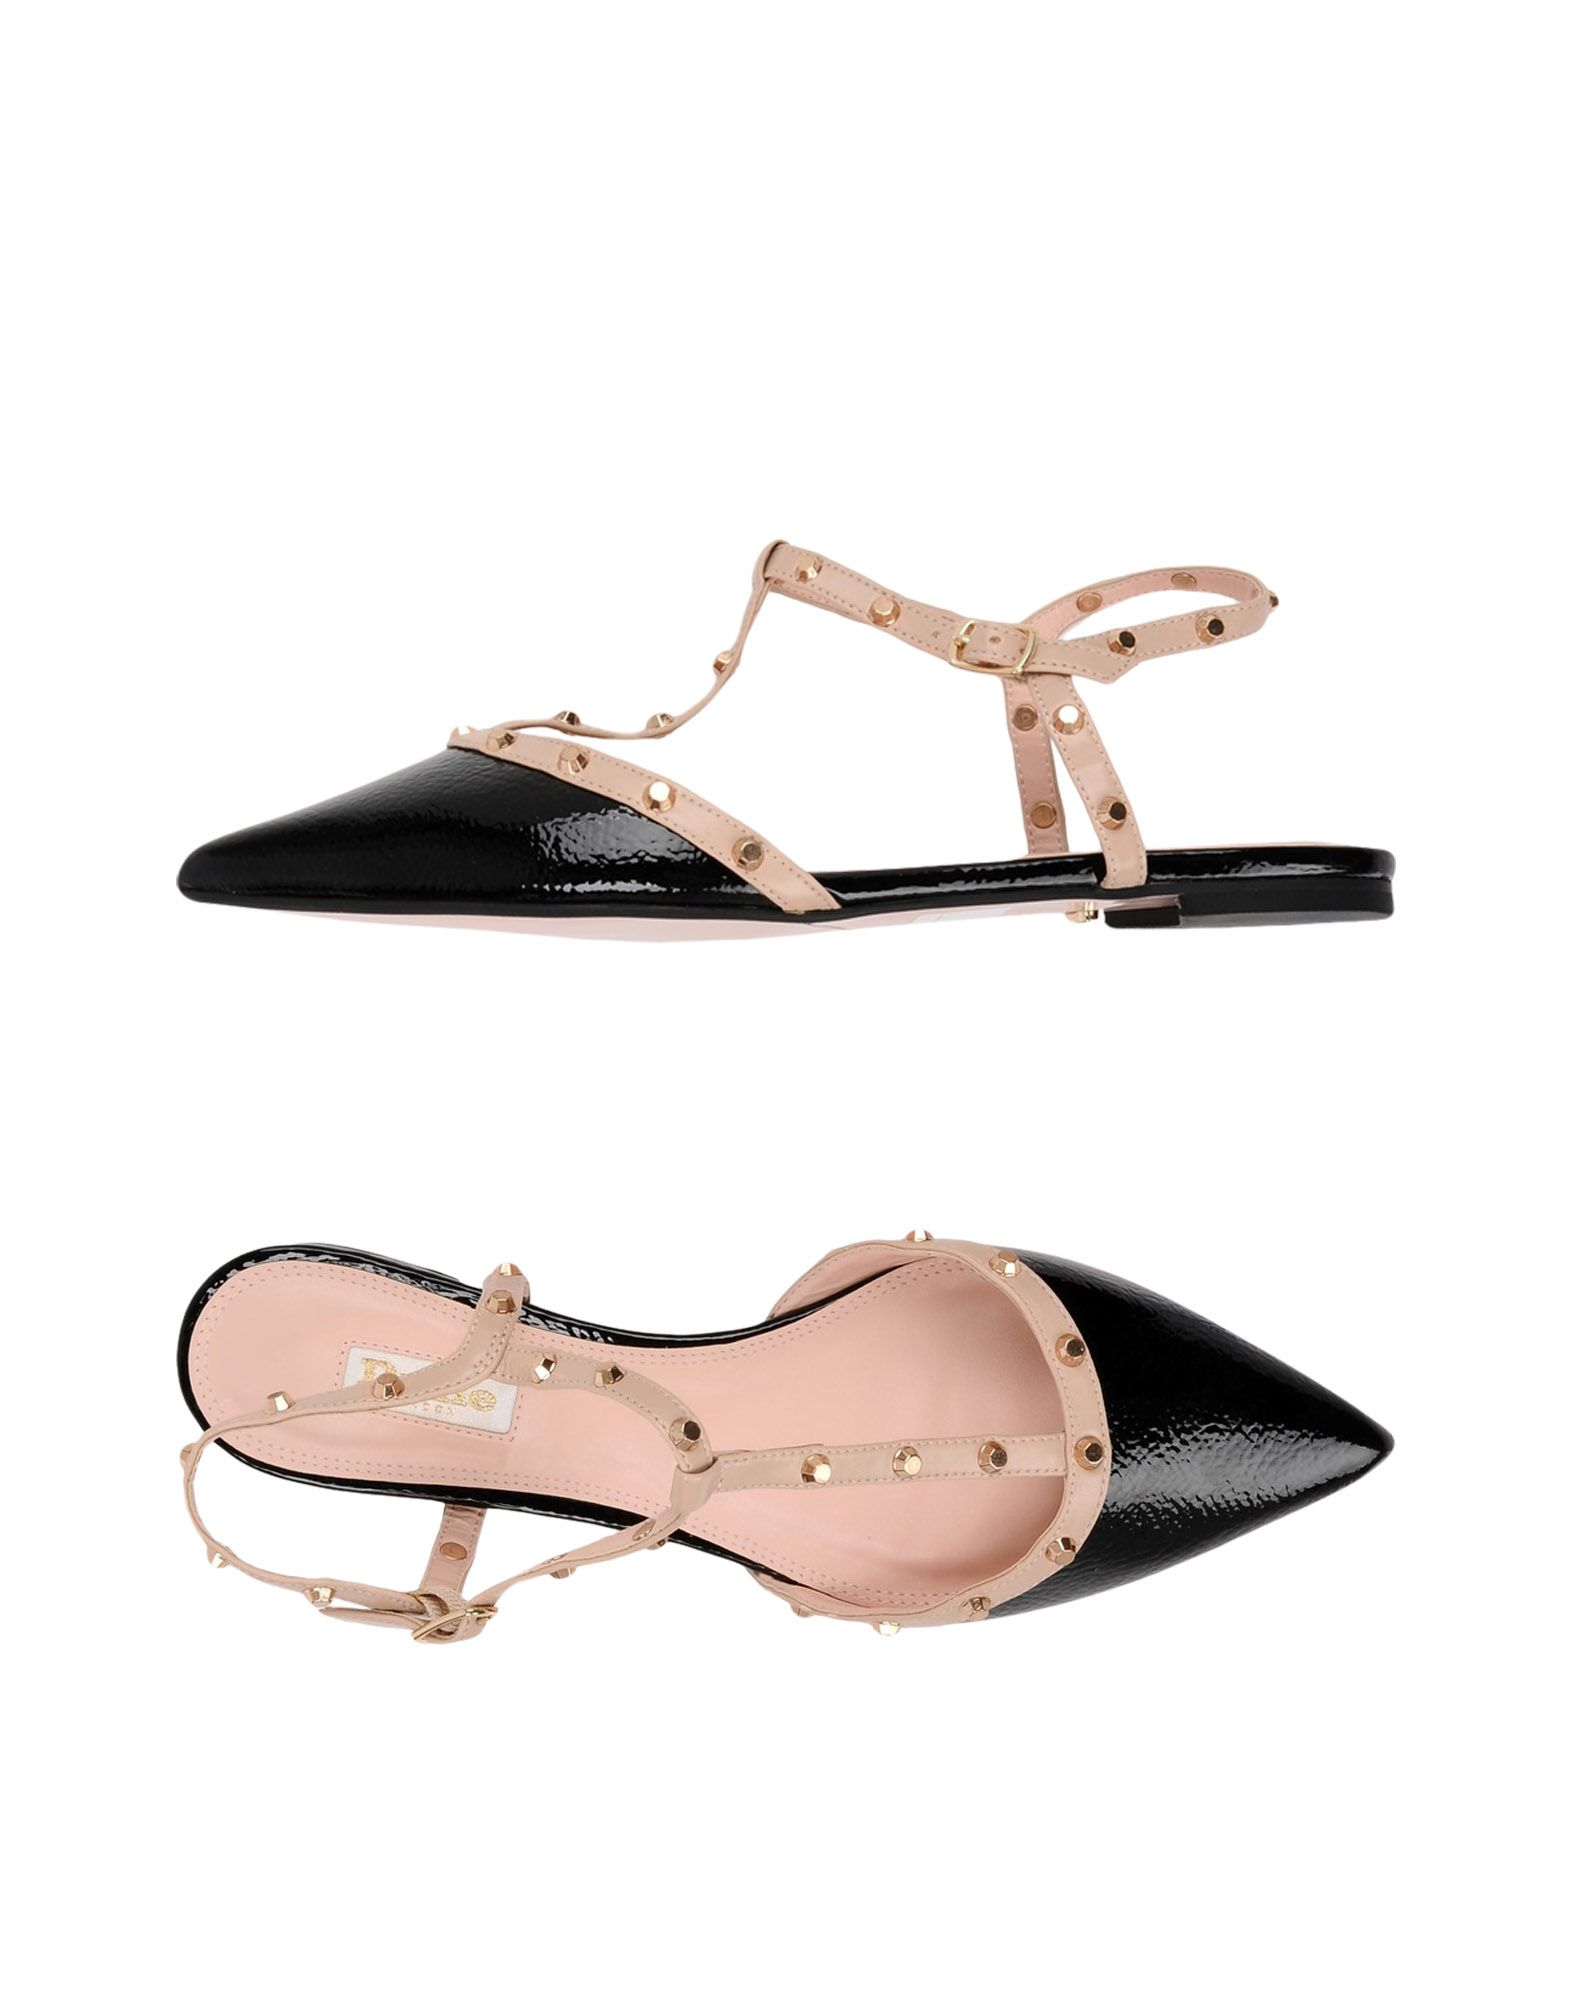 Ballerine Dune London Donna - Acquista online su